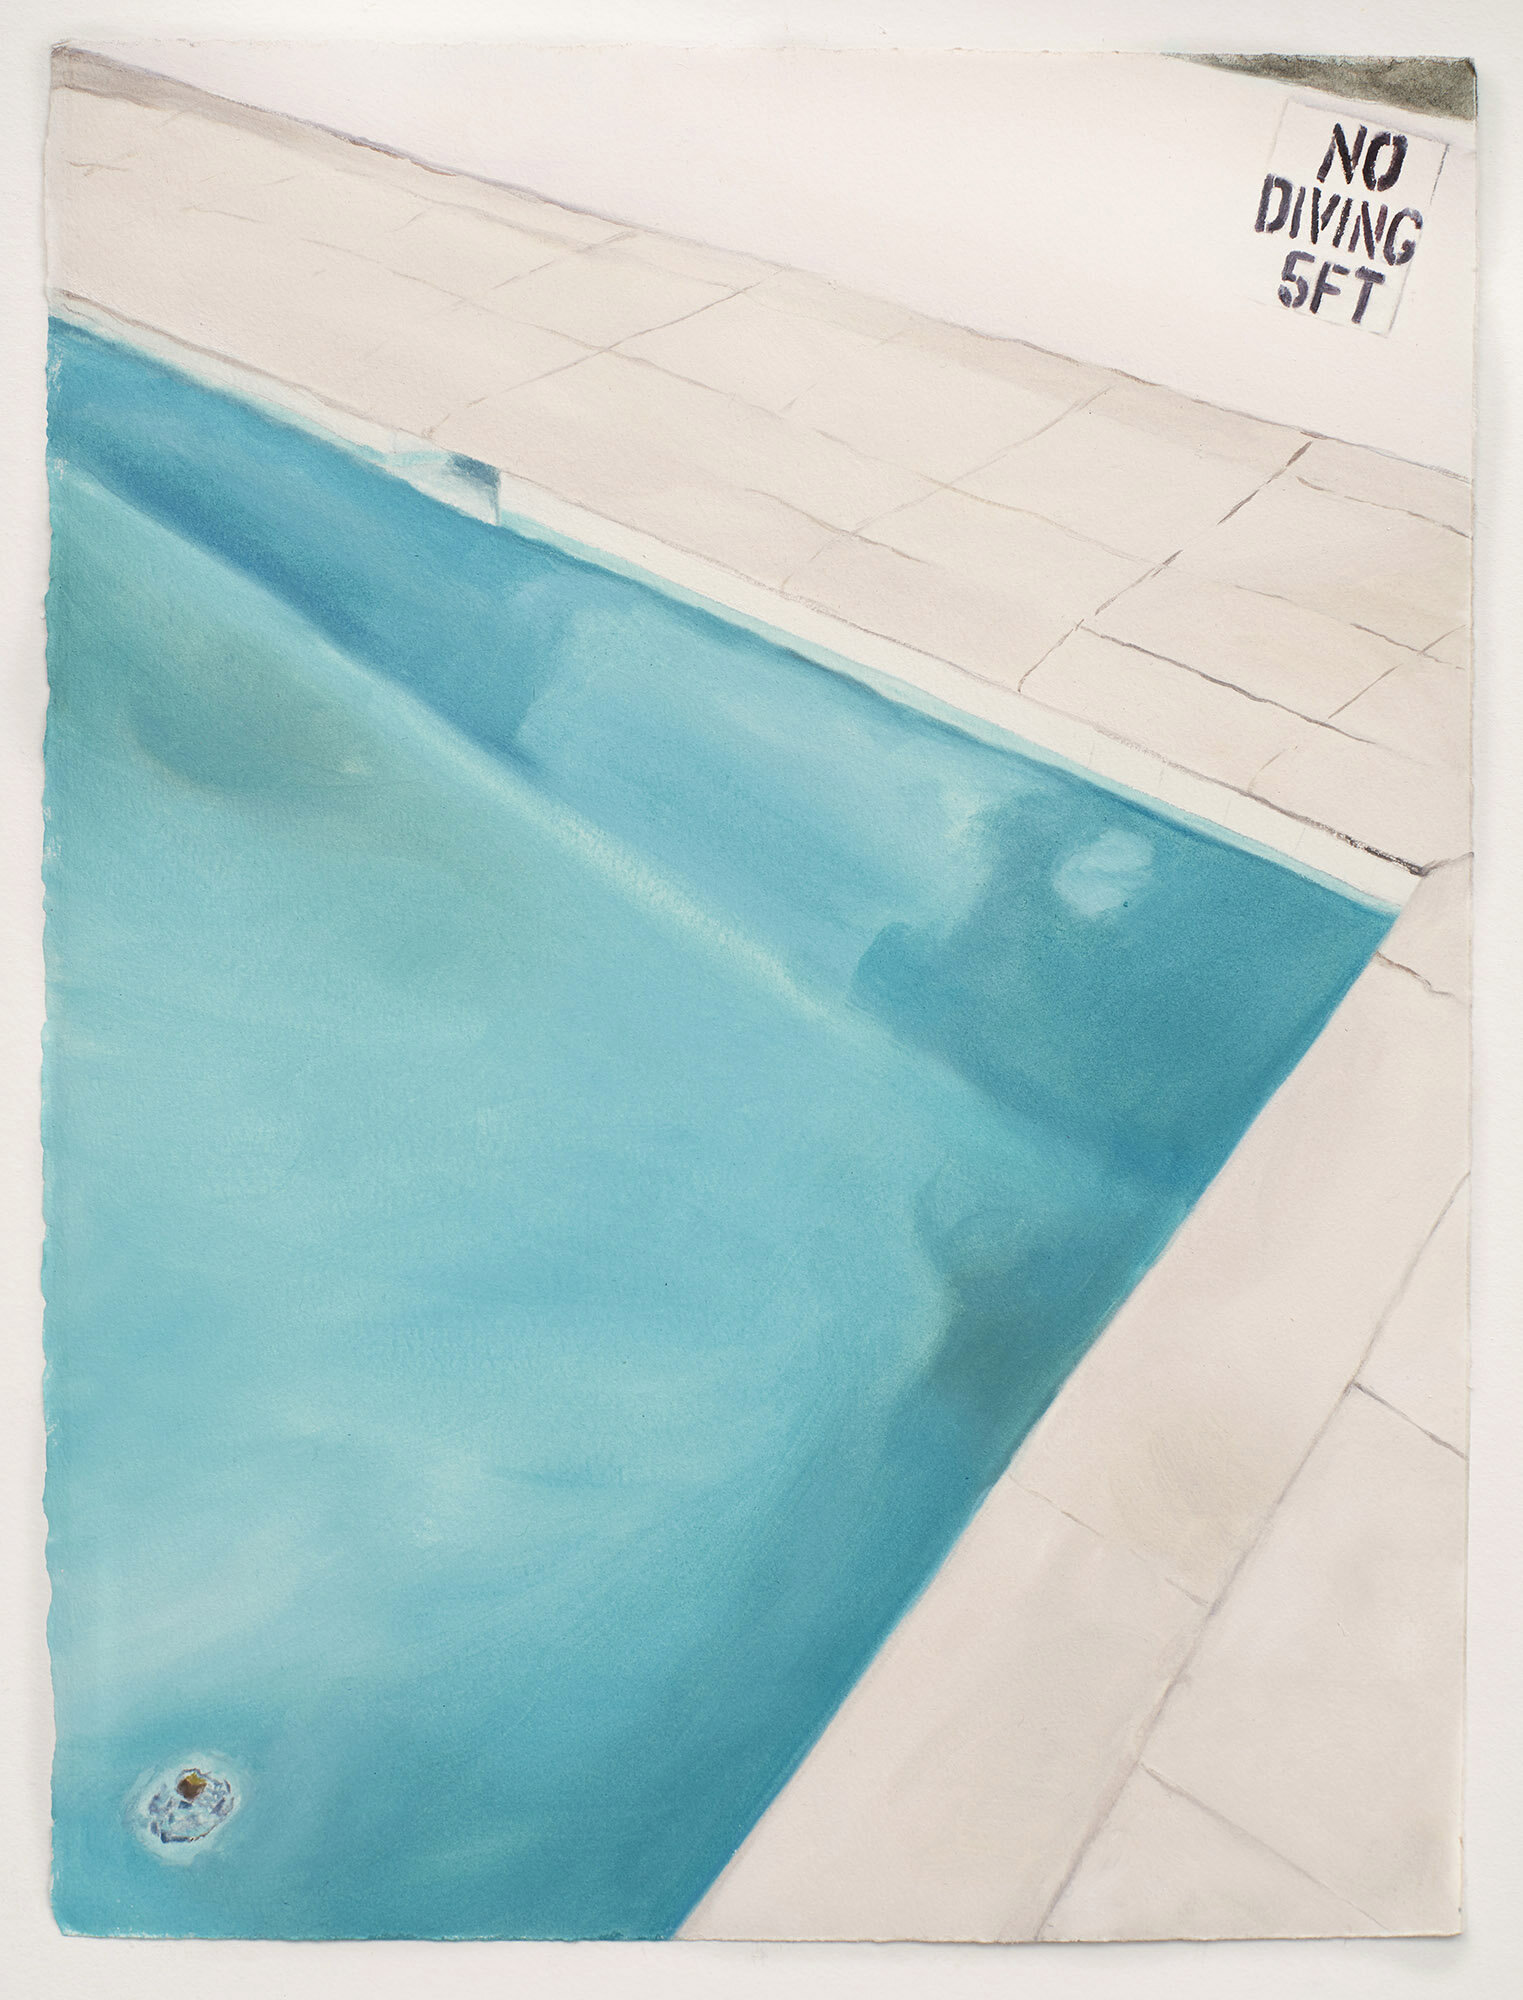 Sarah Kurz, No Diving, 2019, oil on paper, 15 x 11 1/4 inches